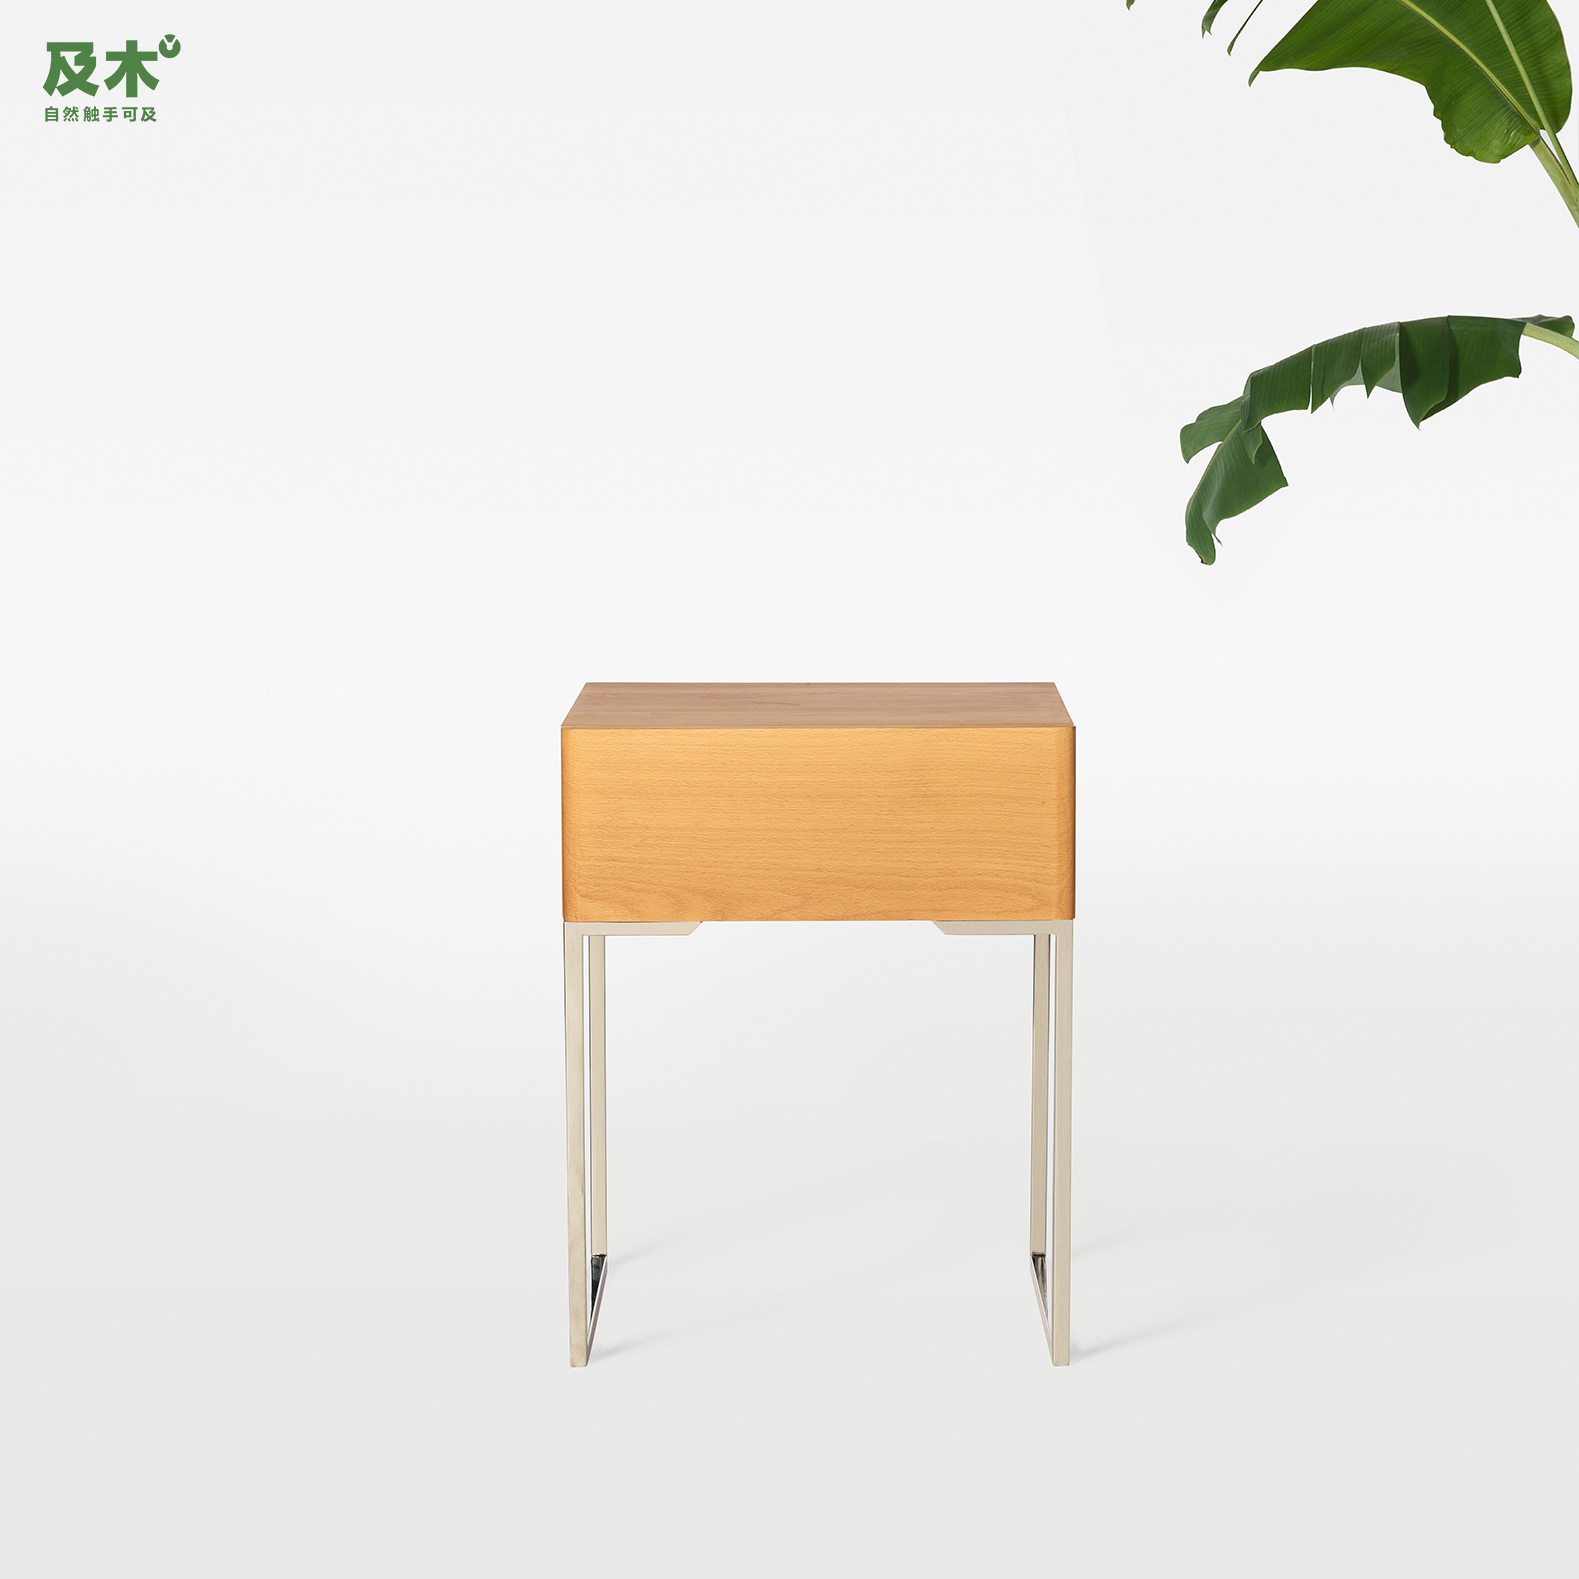 And wood furniture scandinavian modern minimalist fashion creative design CG004 beech wood bedside cabinet bedside cabinet with drawers